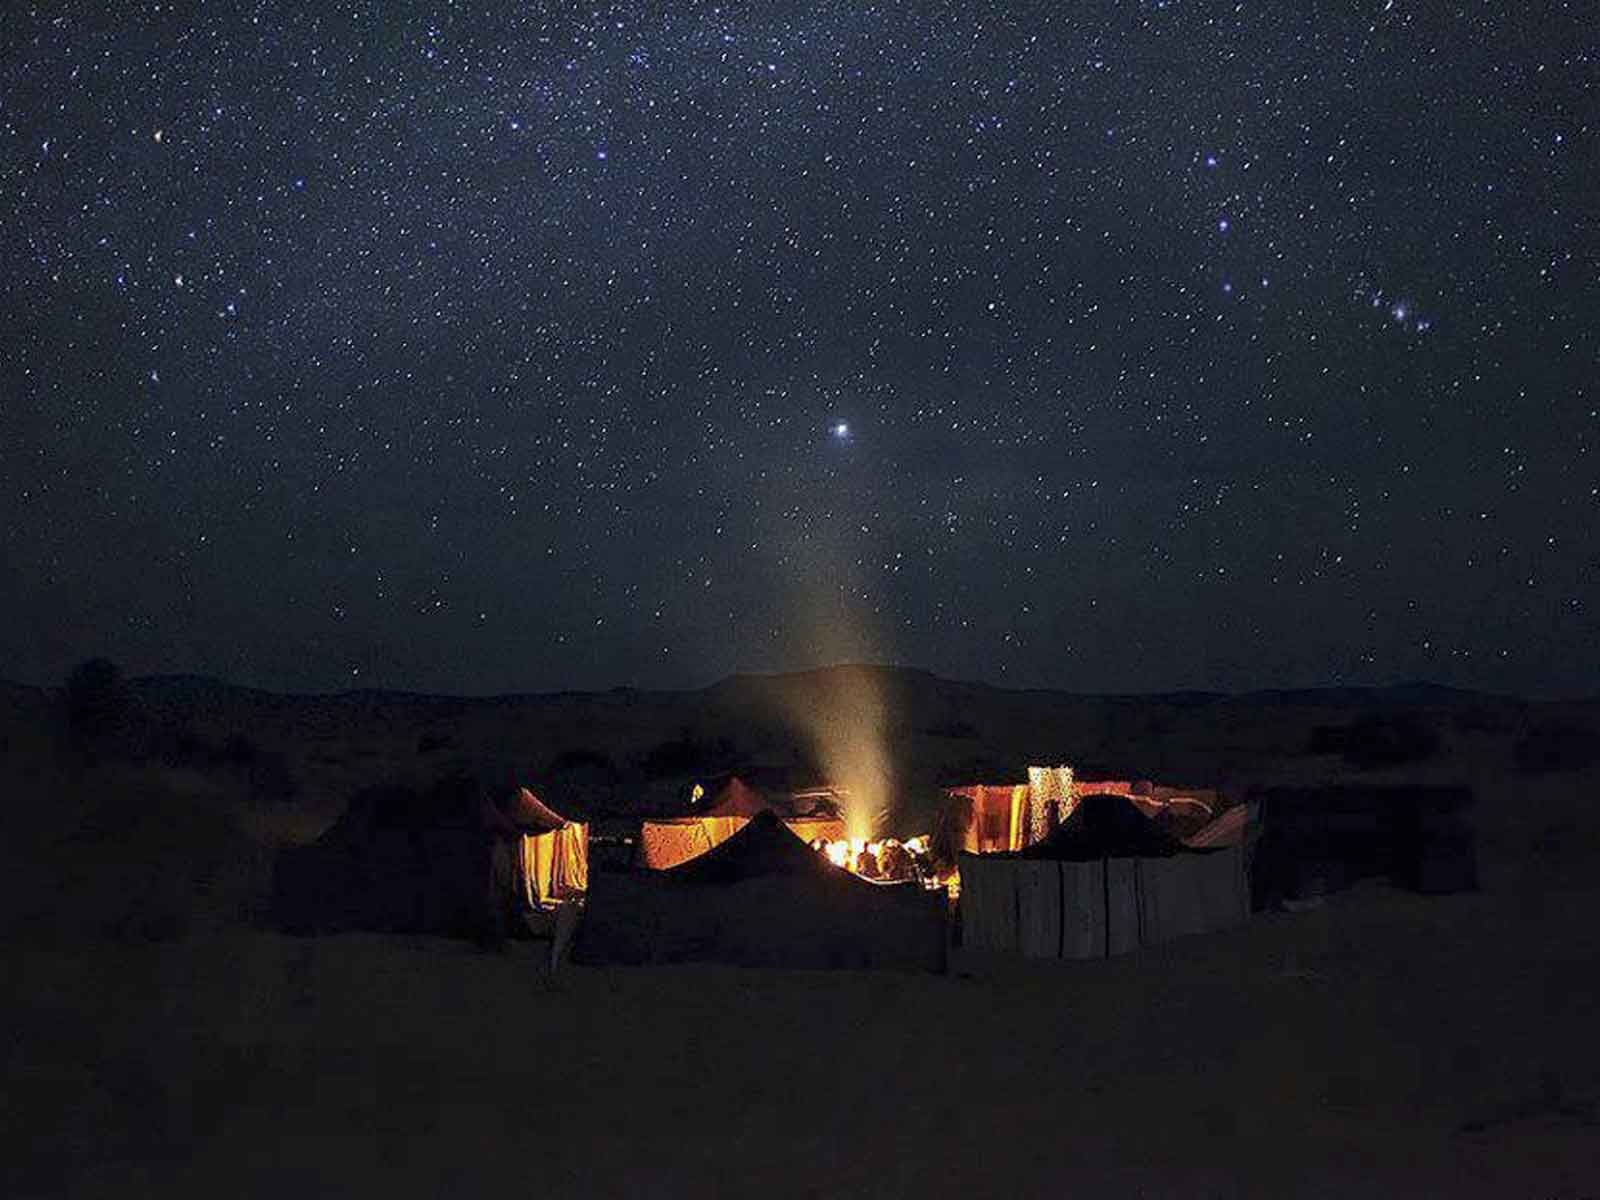 starry night in moroccan desert